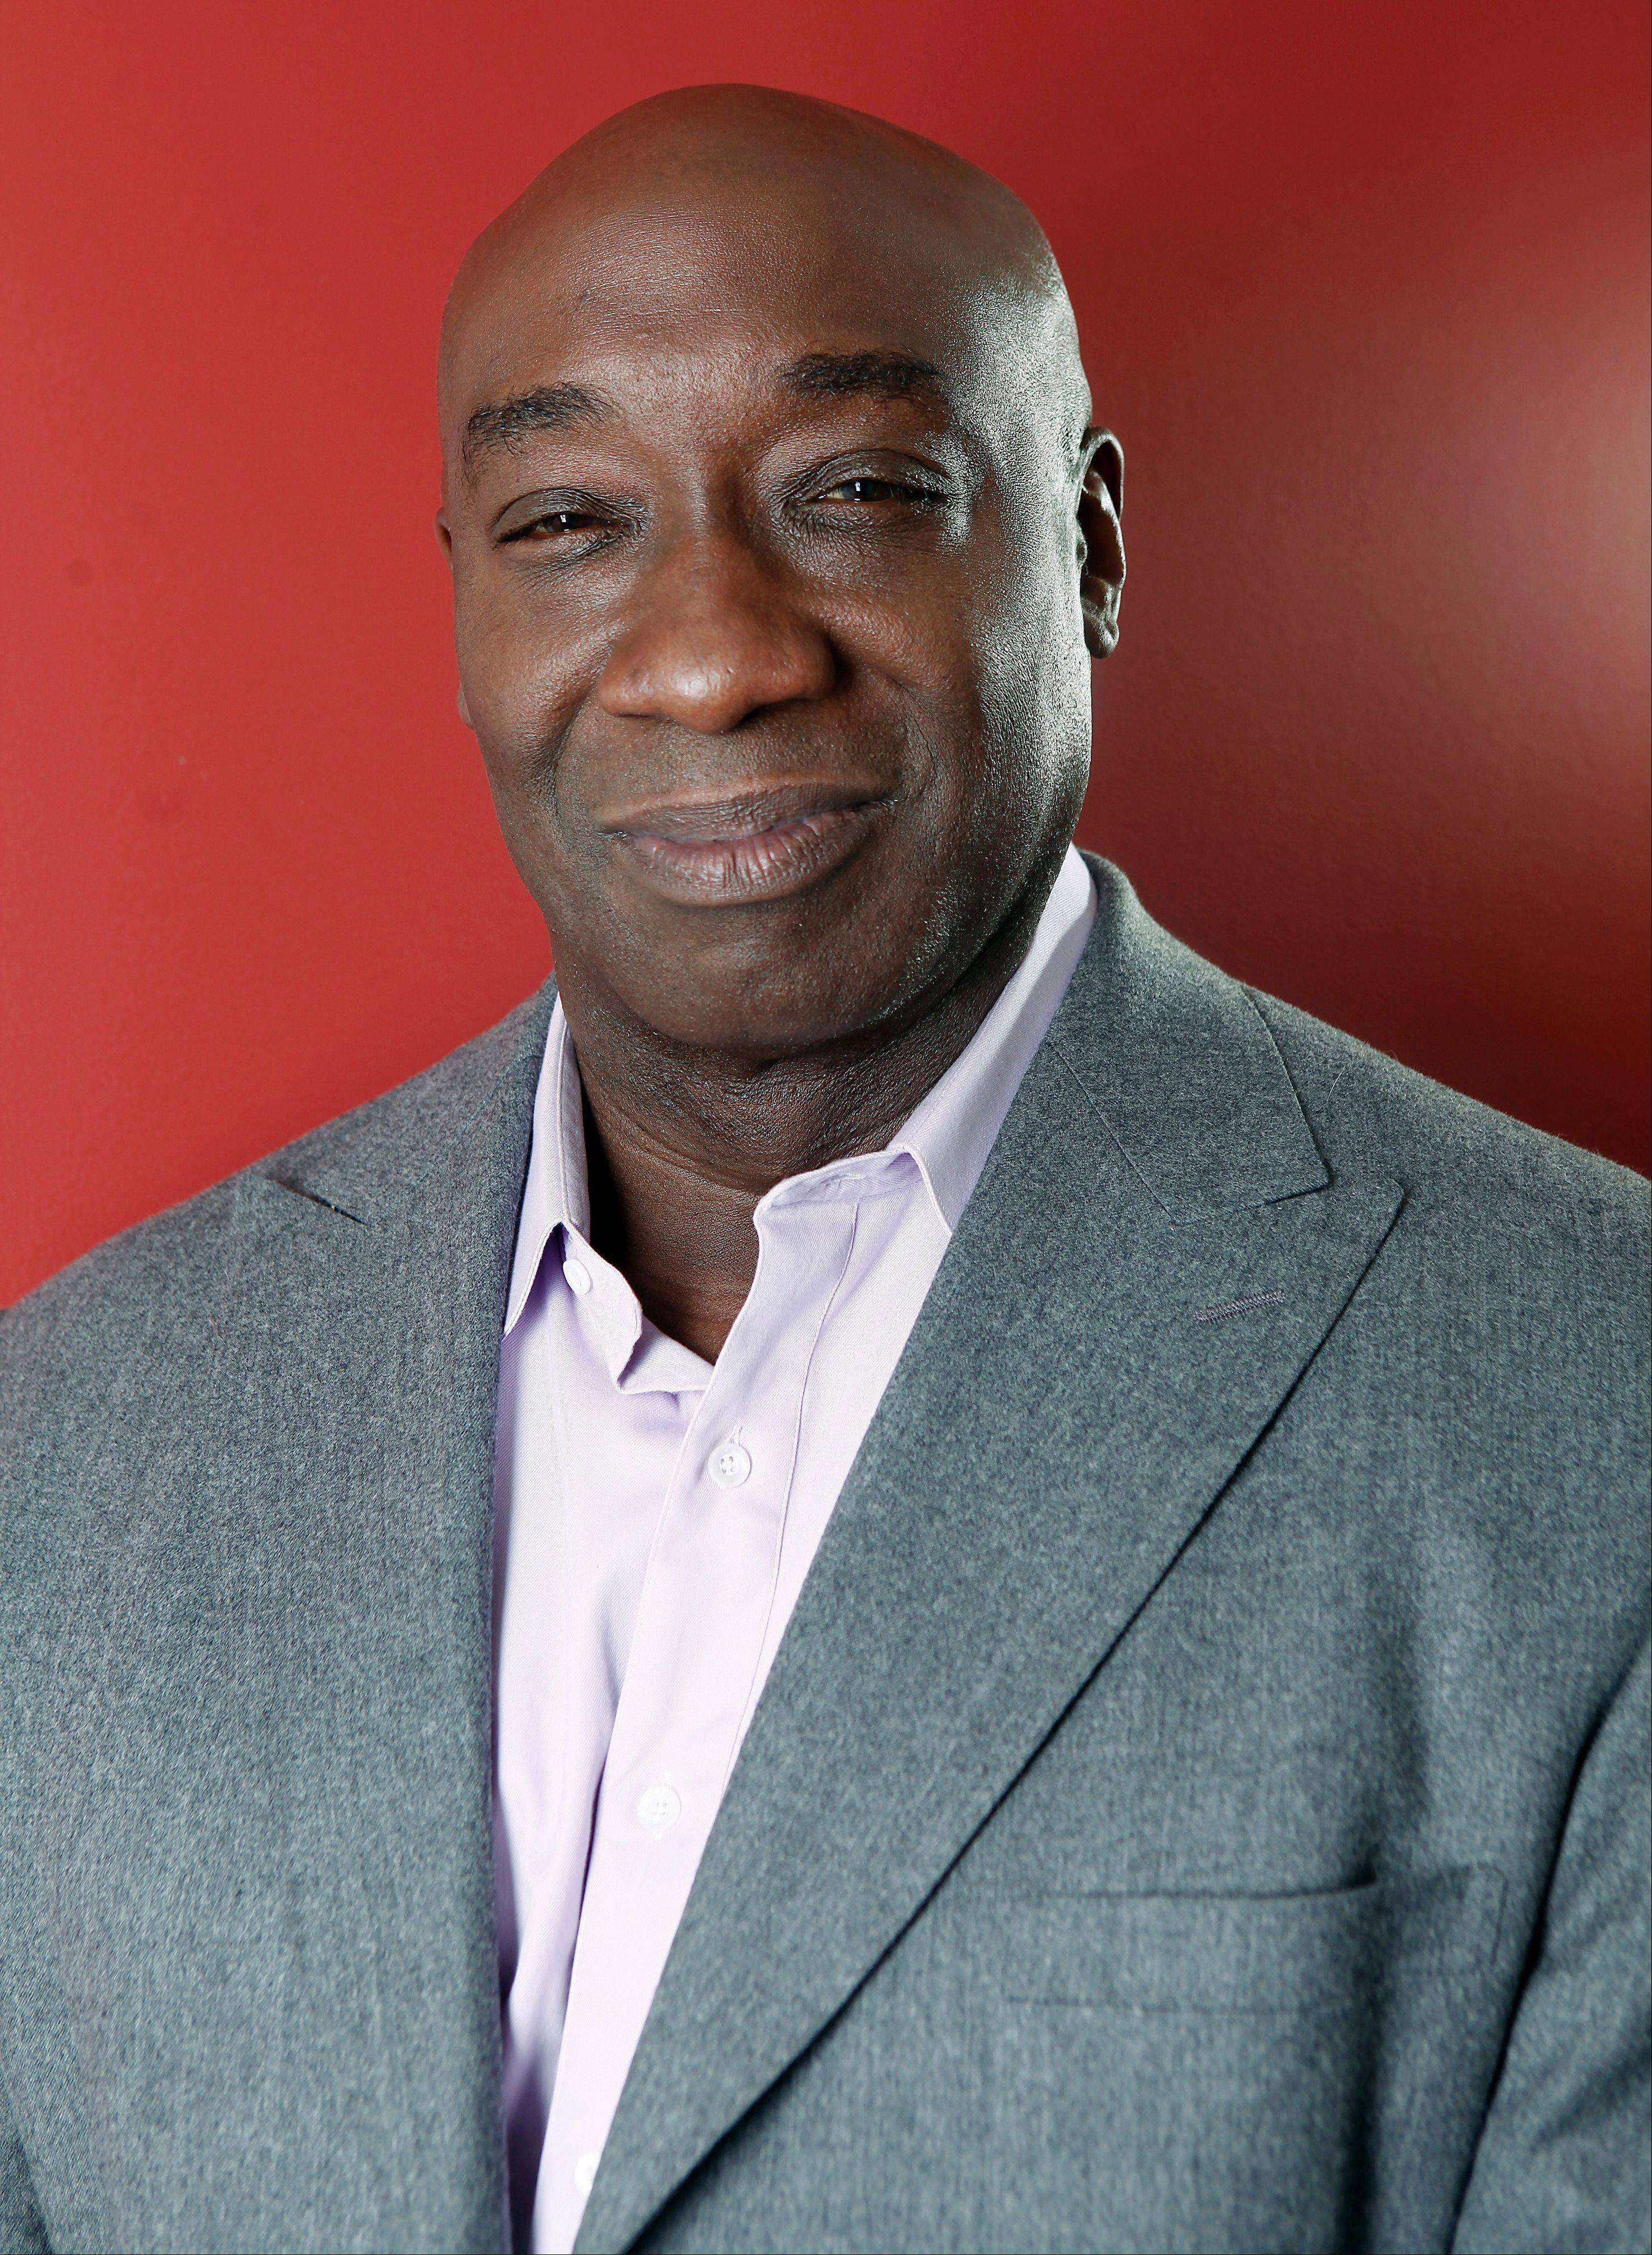 This Jan. 11, 2012 file photo shows actor Michael Clarke Duncan in New York. Duncan died Monday at age 54.